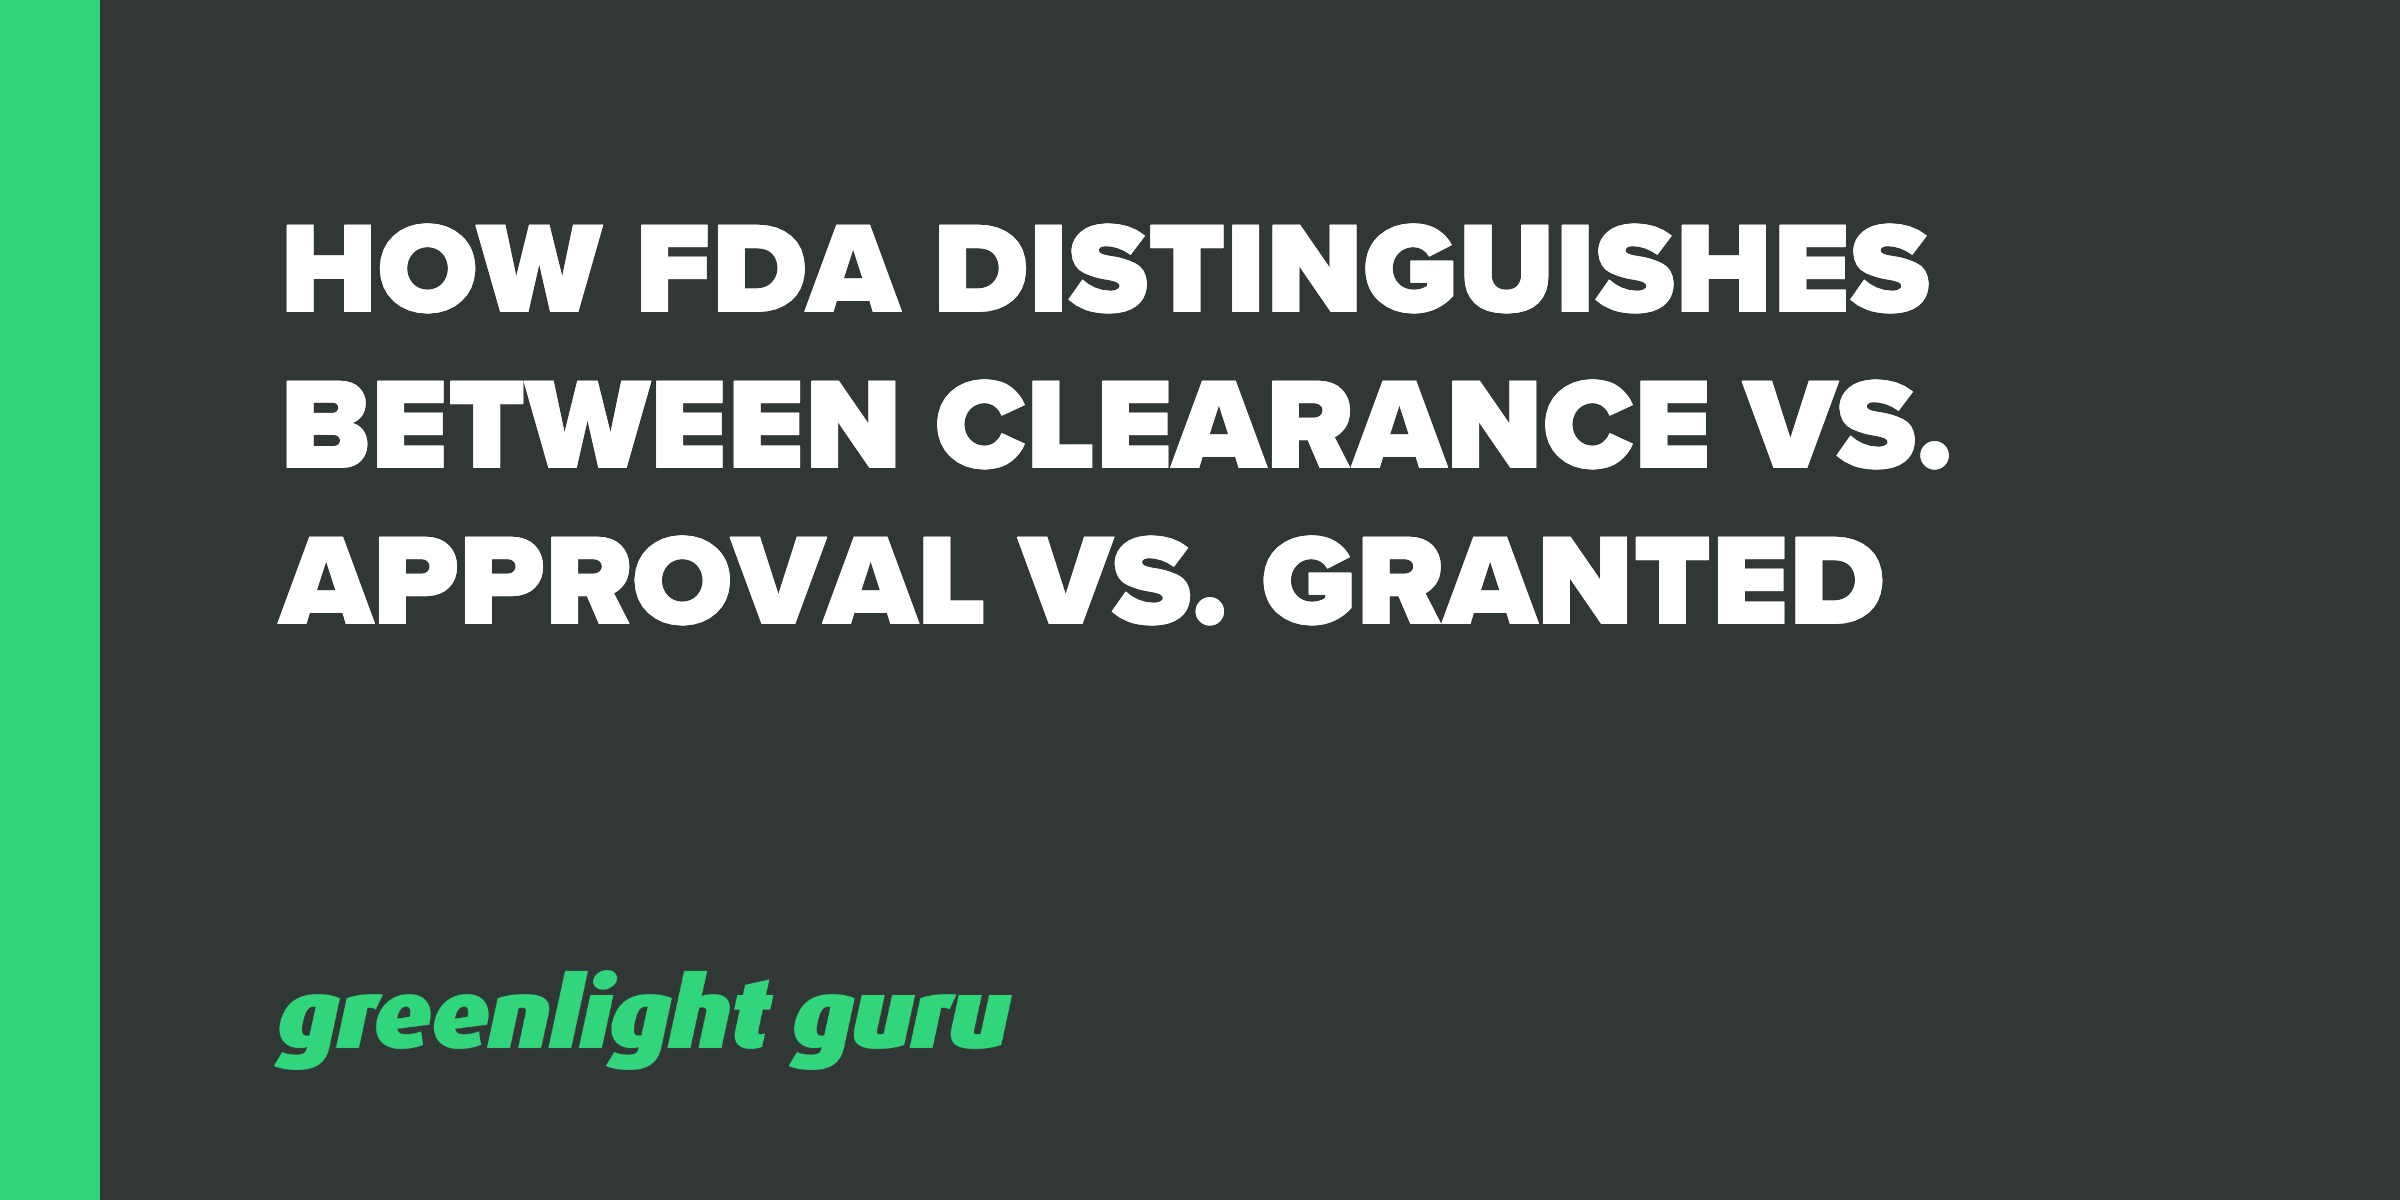 HOW FDA DISTINGUISHES BETWEEN CLEARANCE VS. APPROVAL VS. GRANTED